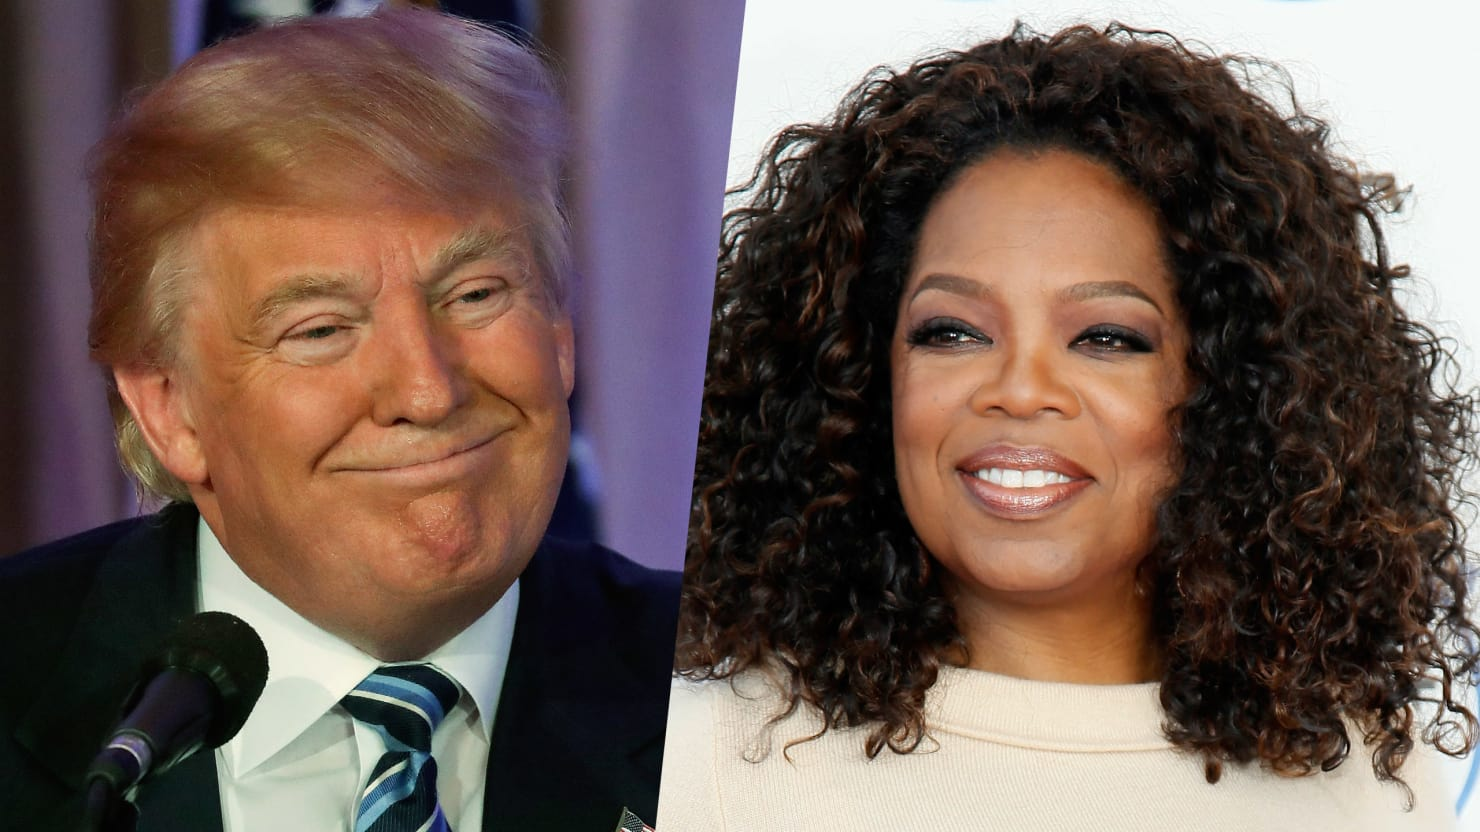 talk show and oprah winfrey Am chicago was renamed after the talk show host and the rest, as they say, was history winfrey's relatability helped the show find major success the oprah winfrey show covered a vast array.